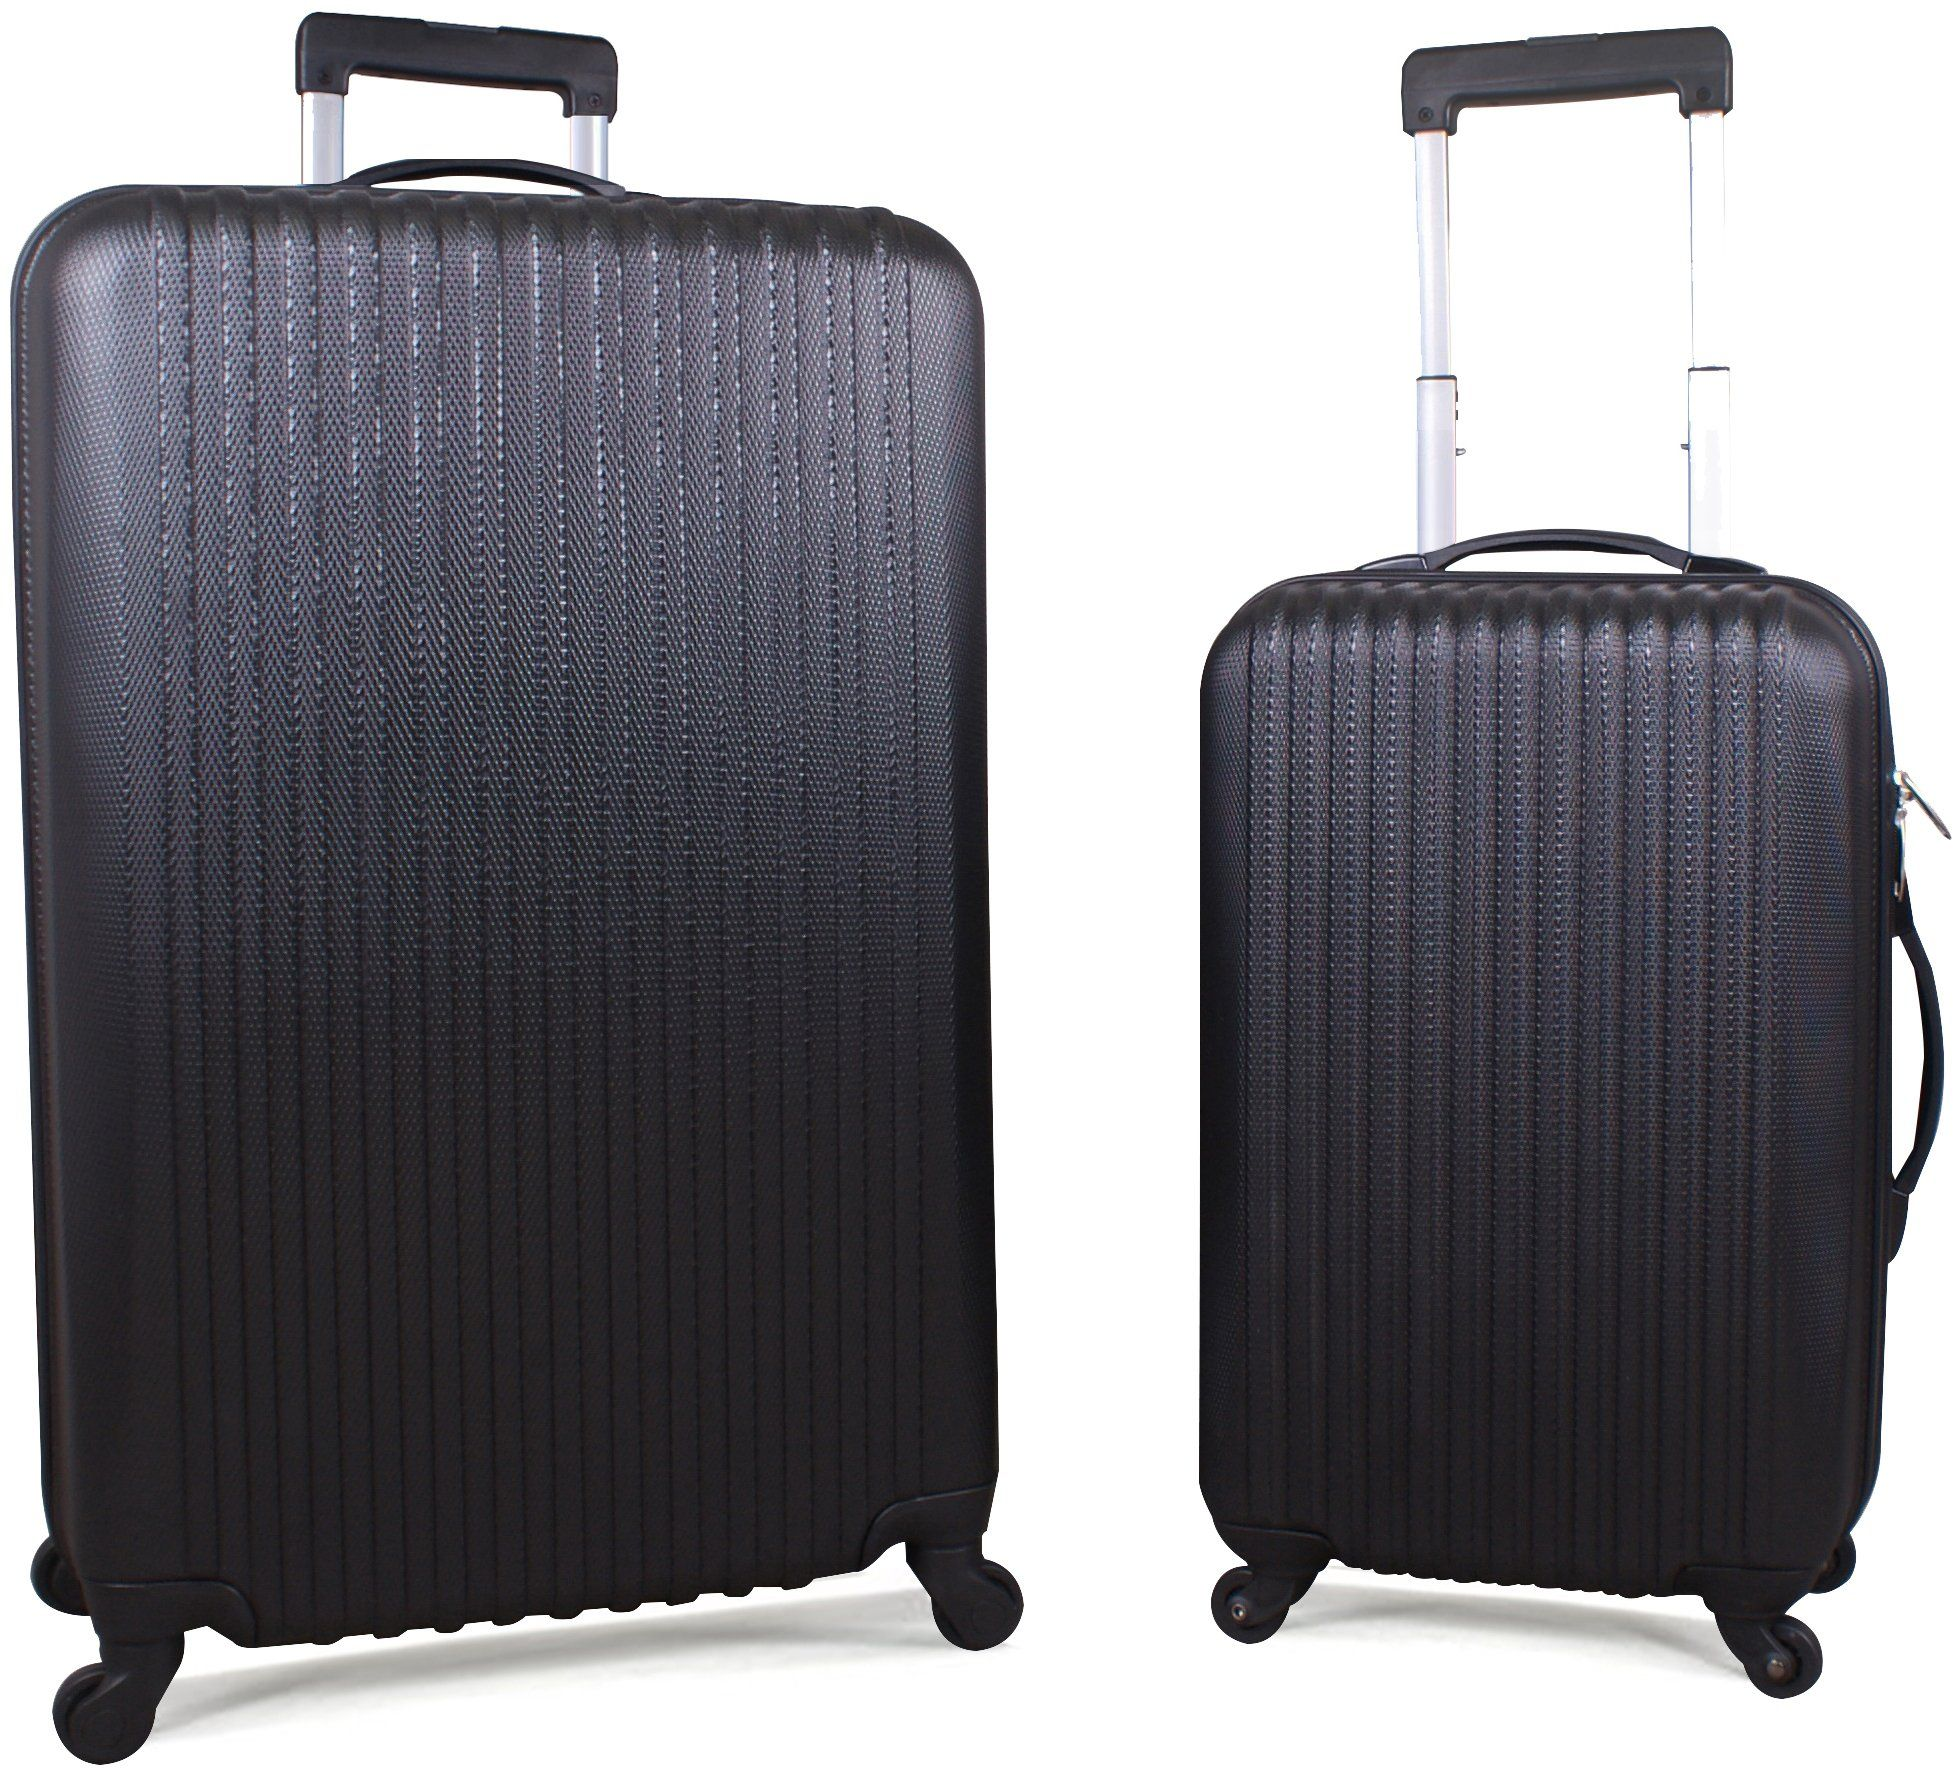 Luggage 20 Inch & 28 Inch 2 Piece Spinner Set - Black - by Utopia ...